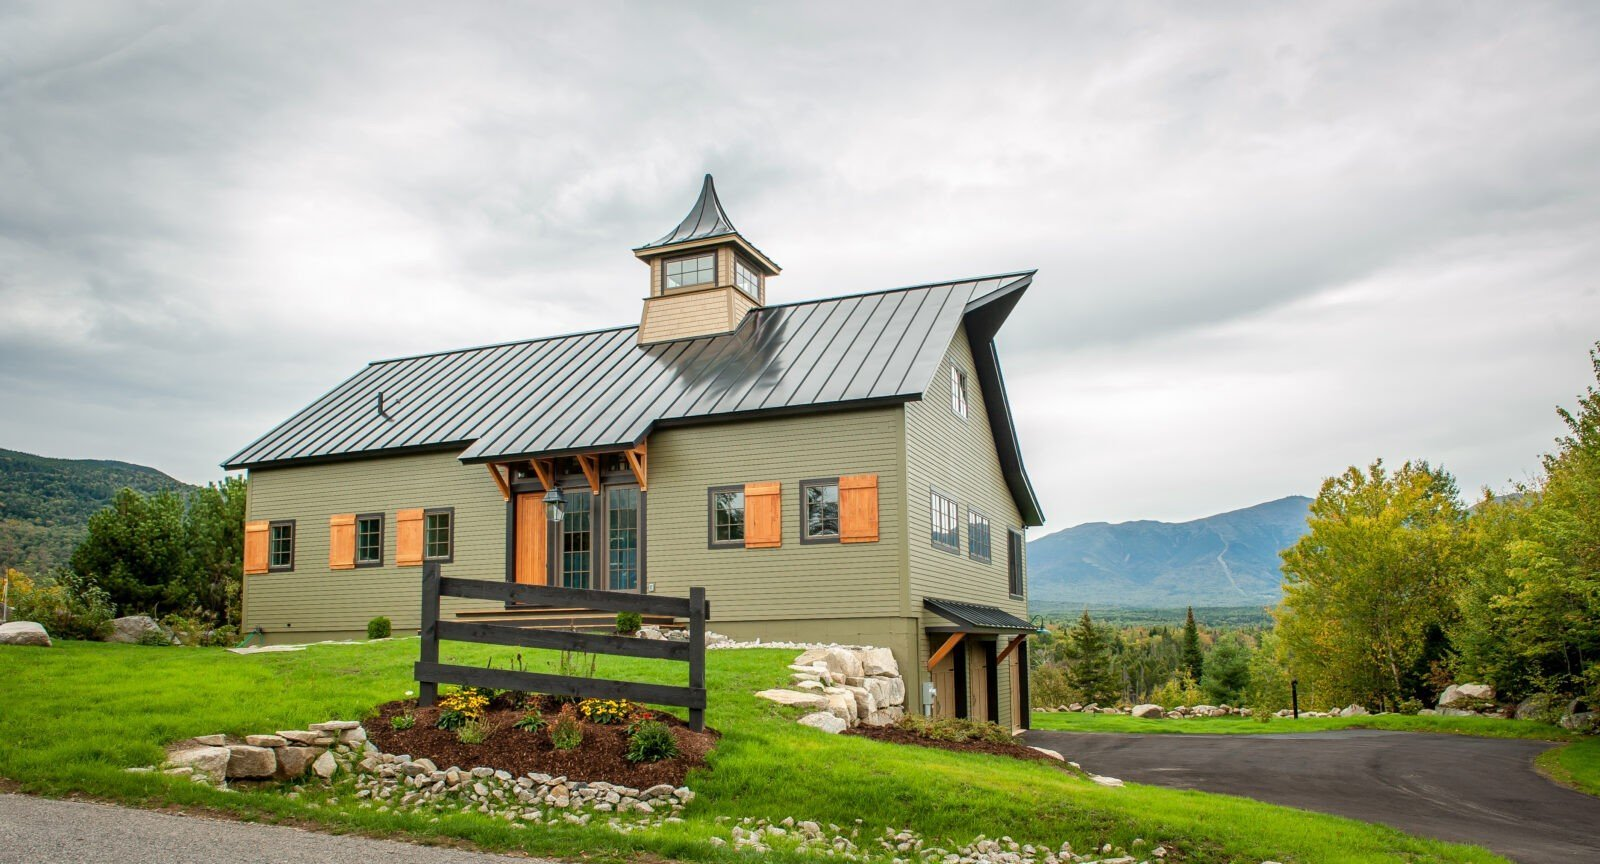 Top notch barn home plans from the ybh design team Barnhouse builders